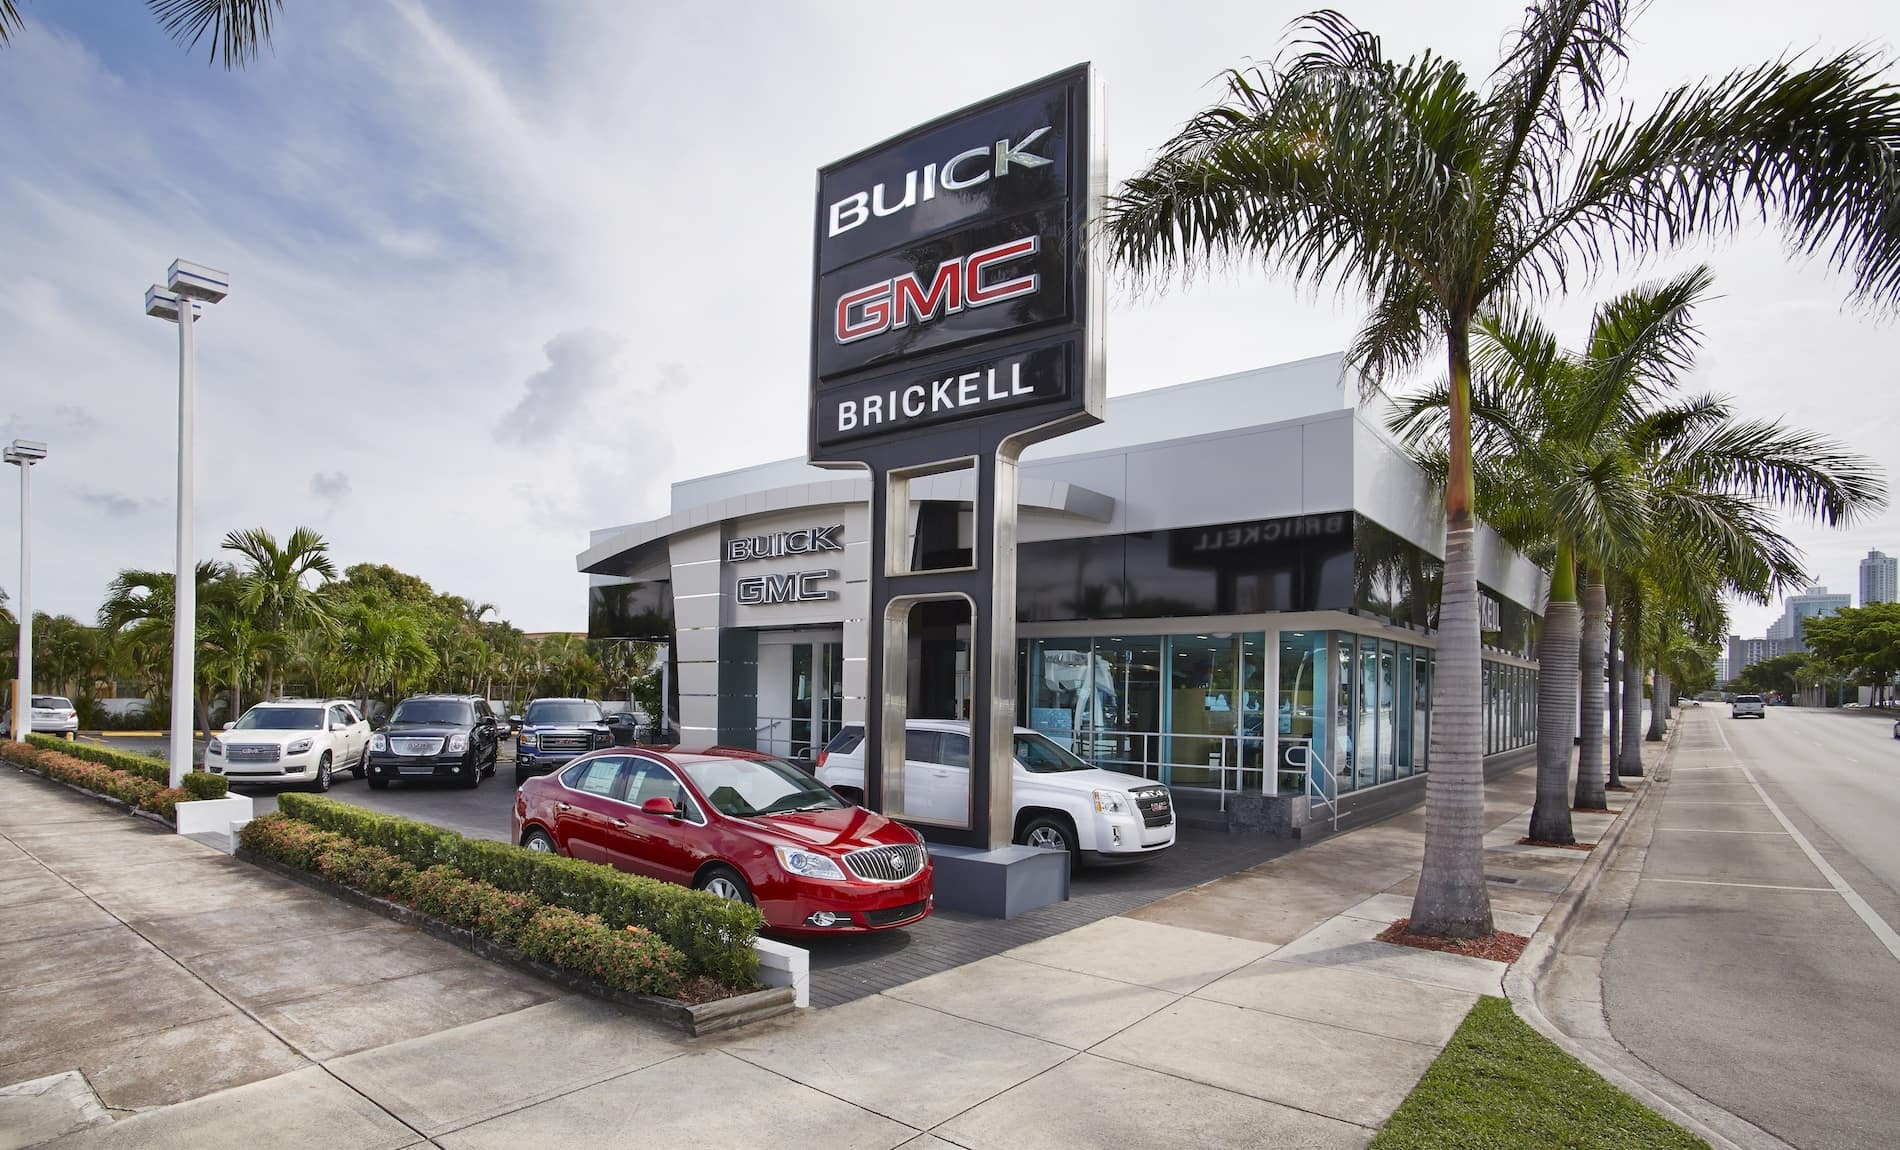 Brickell GMC